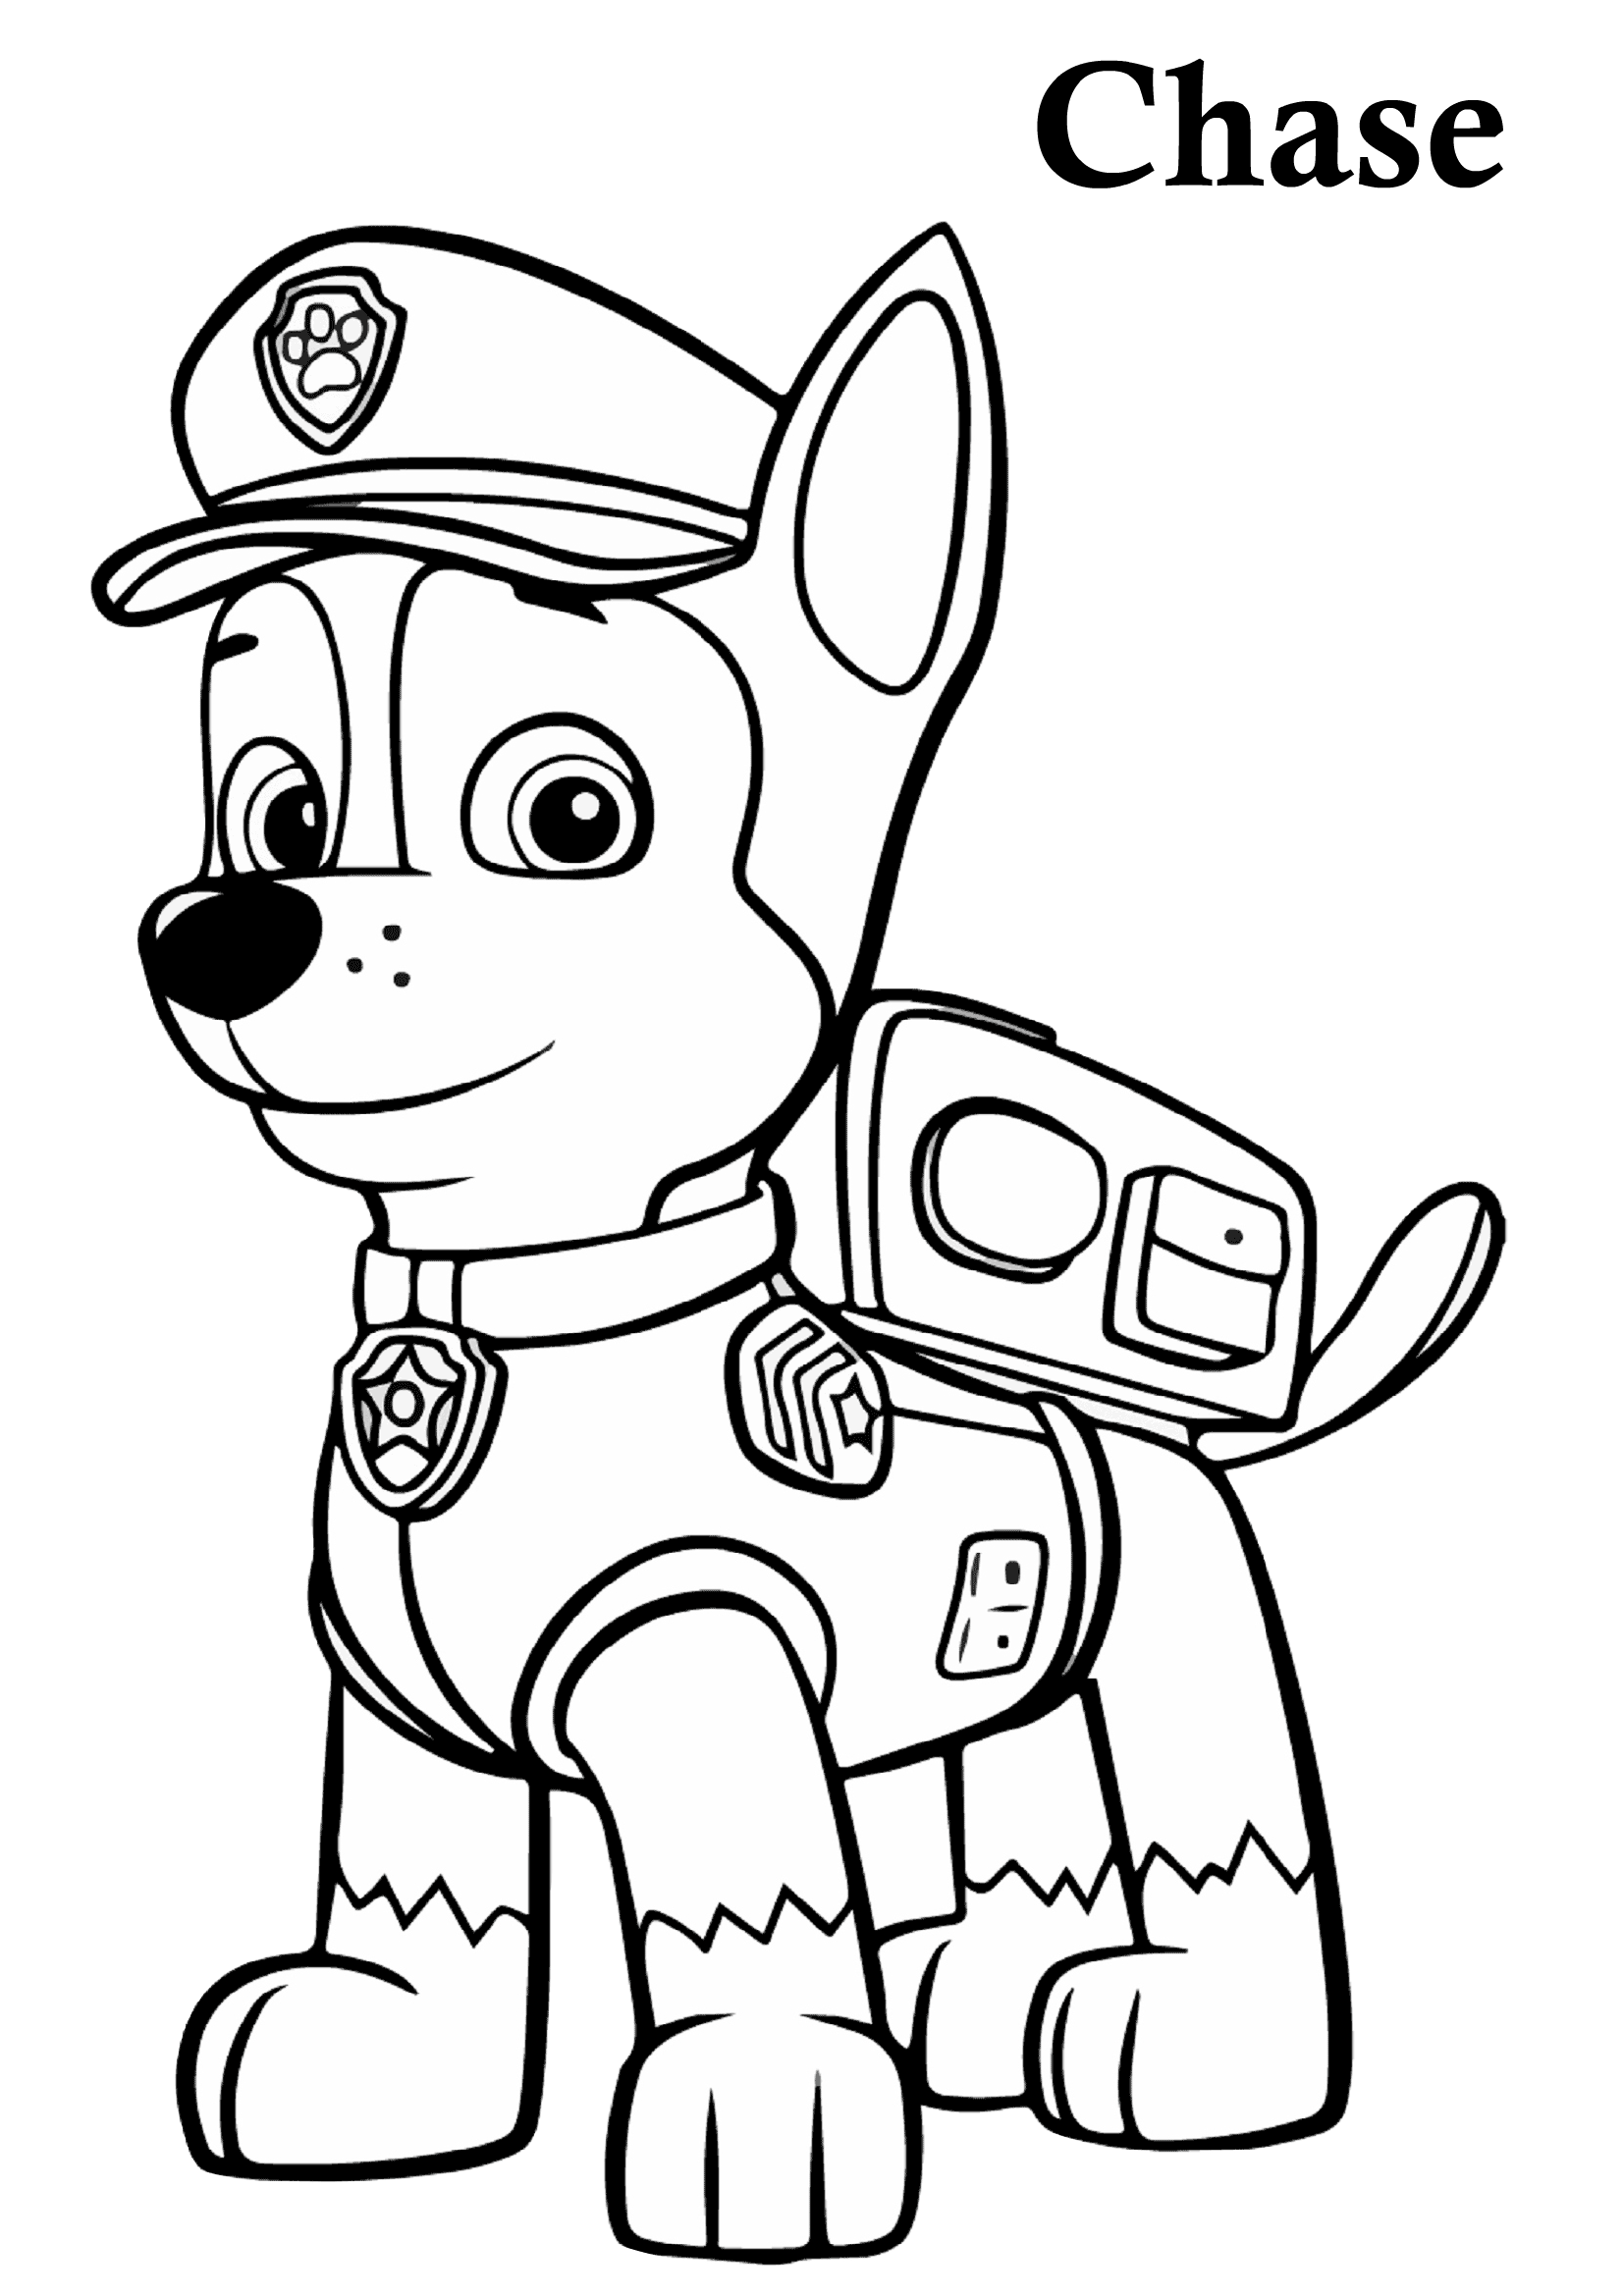 free paw patrol coloring pages paw patrol coloring pages printable free coloring sheets free coloring patrol paw pages